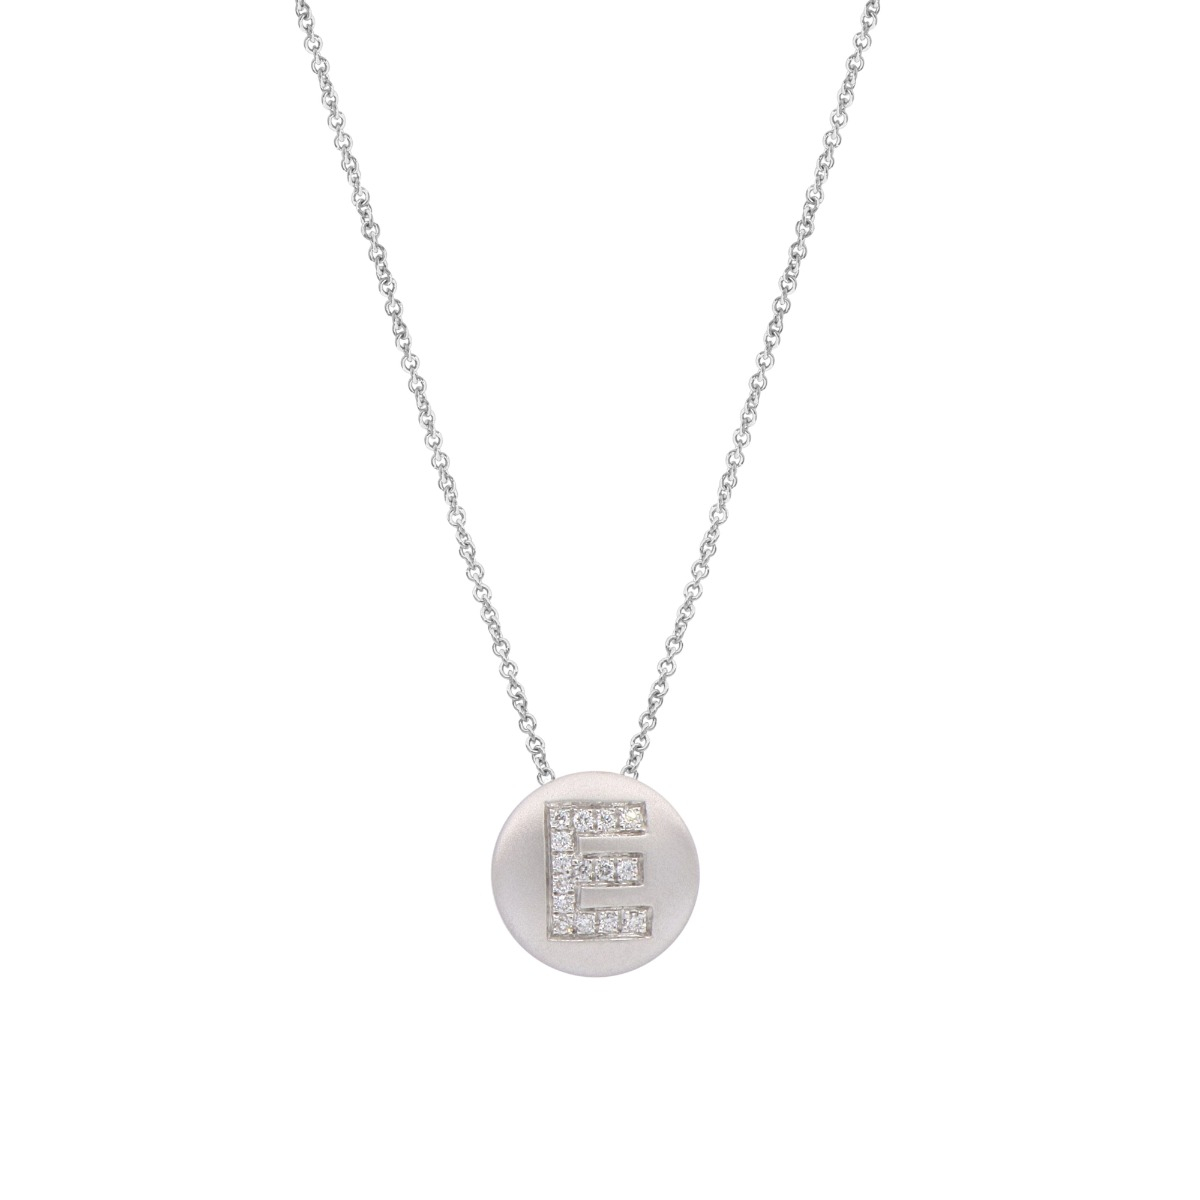 Satin Round Disc Necklace with Diamond Letter in 18 Kt White Gold